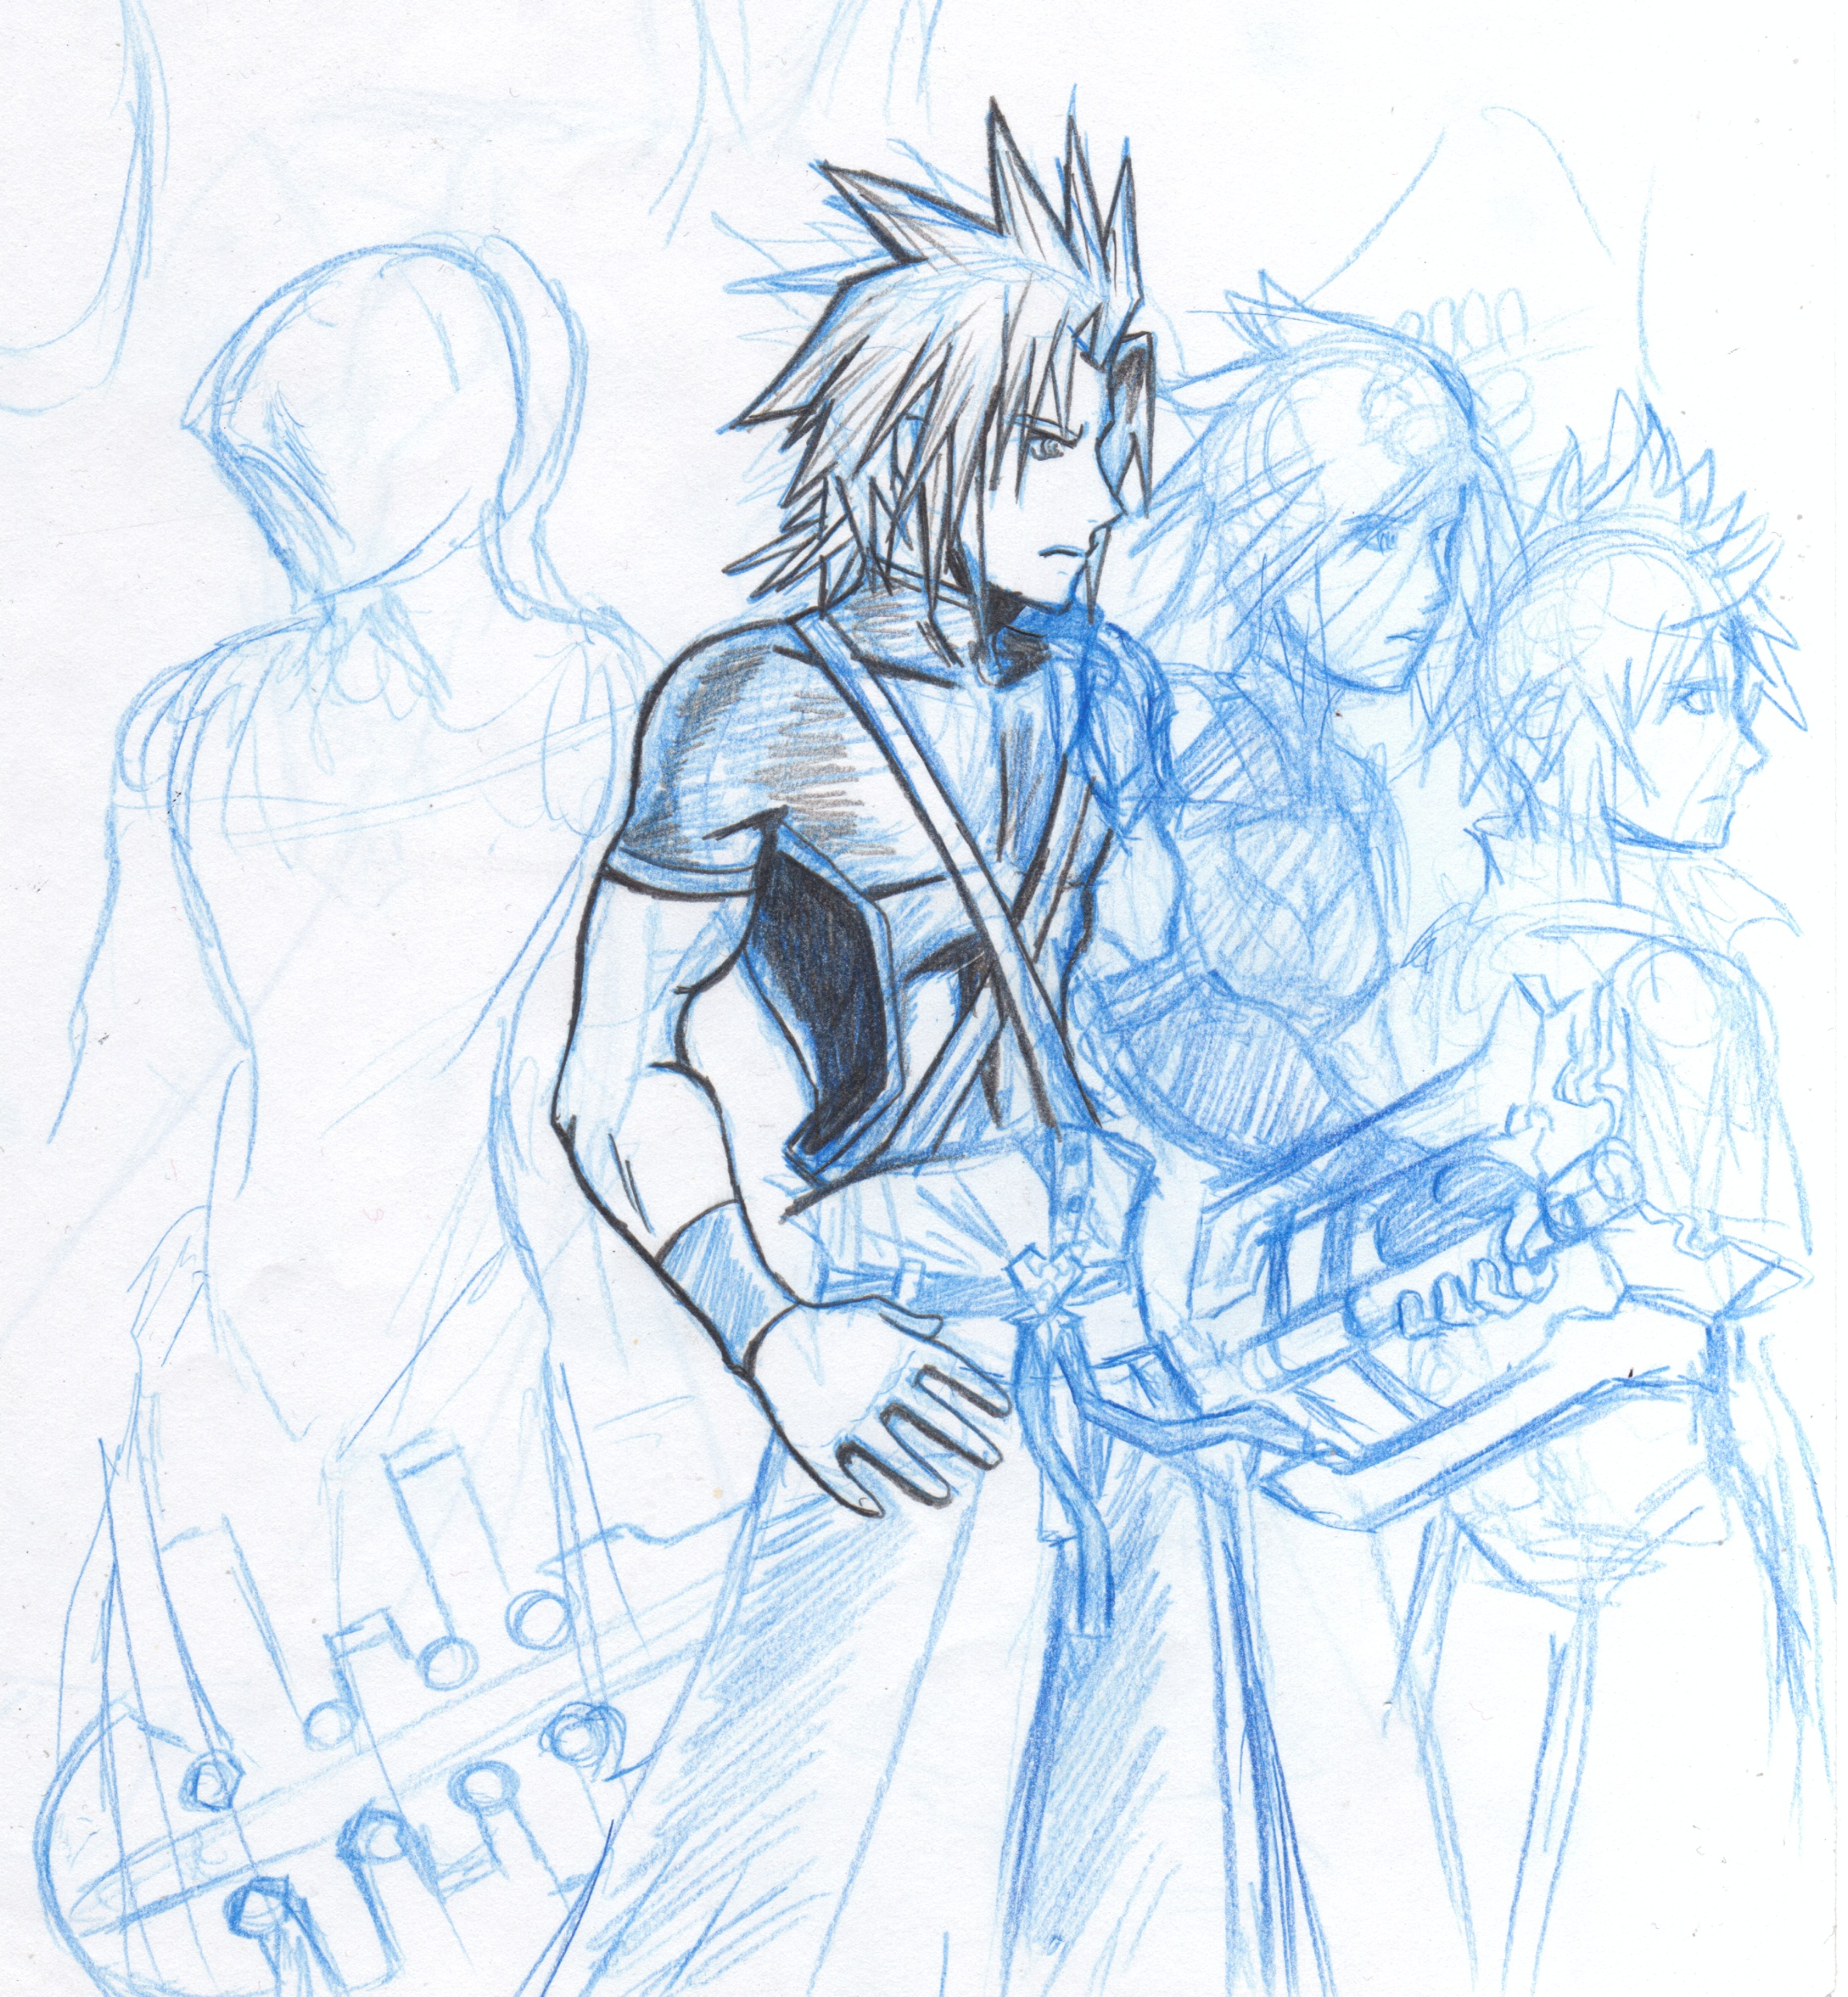 http://fc02.deviantart.net/fs20/f/2007/280/1/8/Kingdom_Hearts_Birth_By_Sleep_by_arvalis.jpg